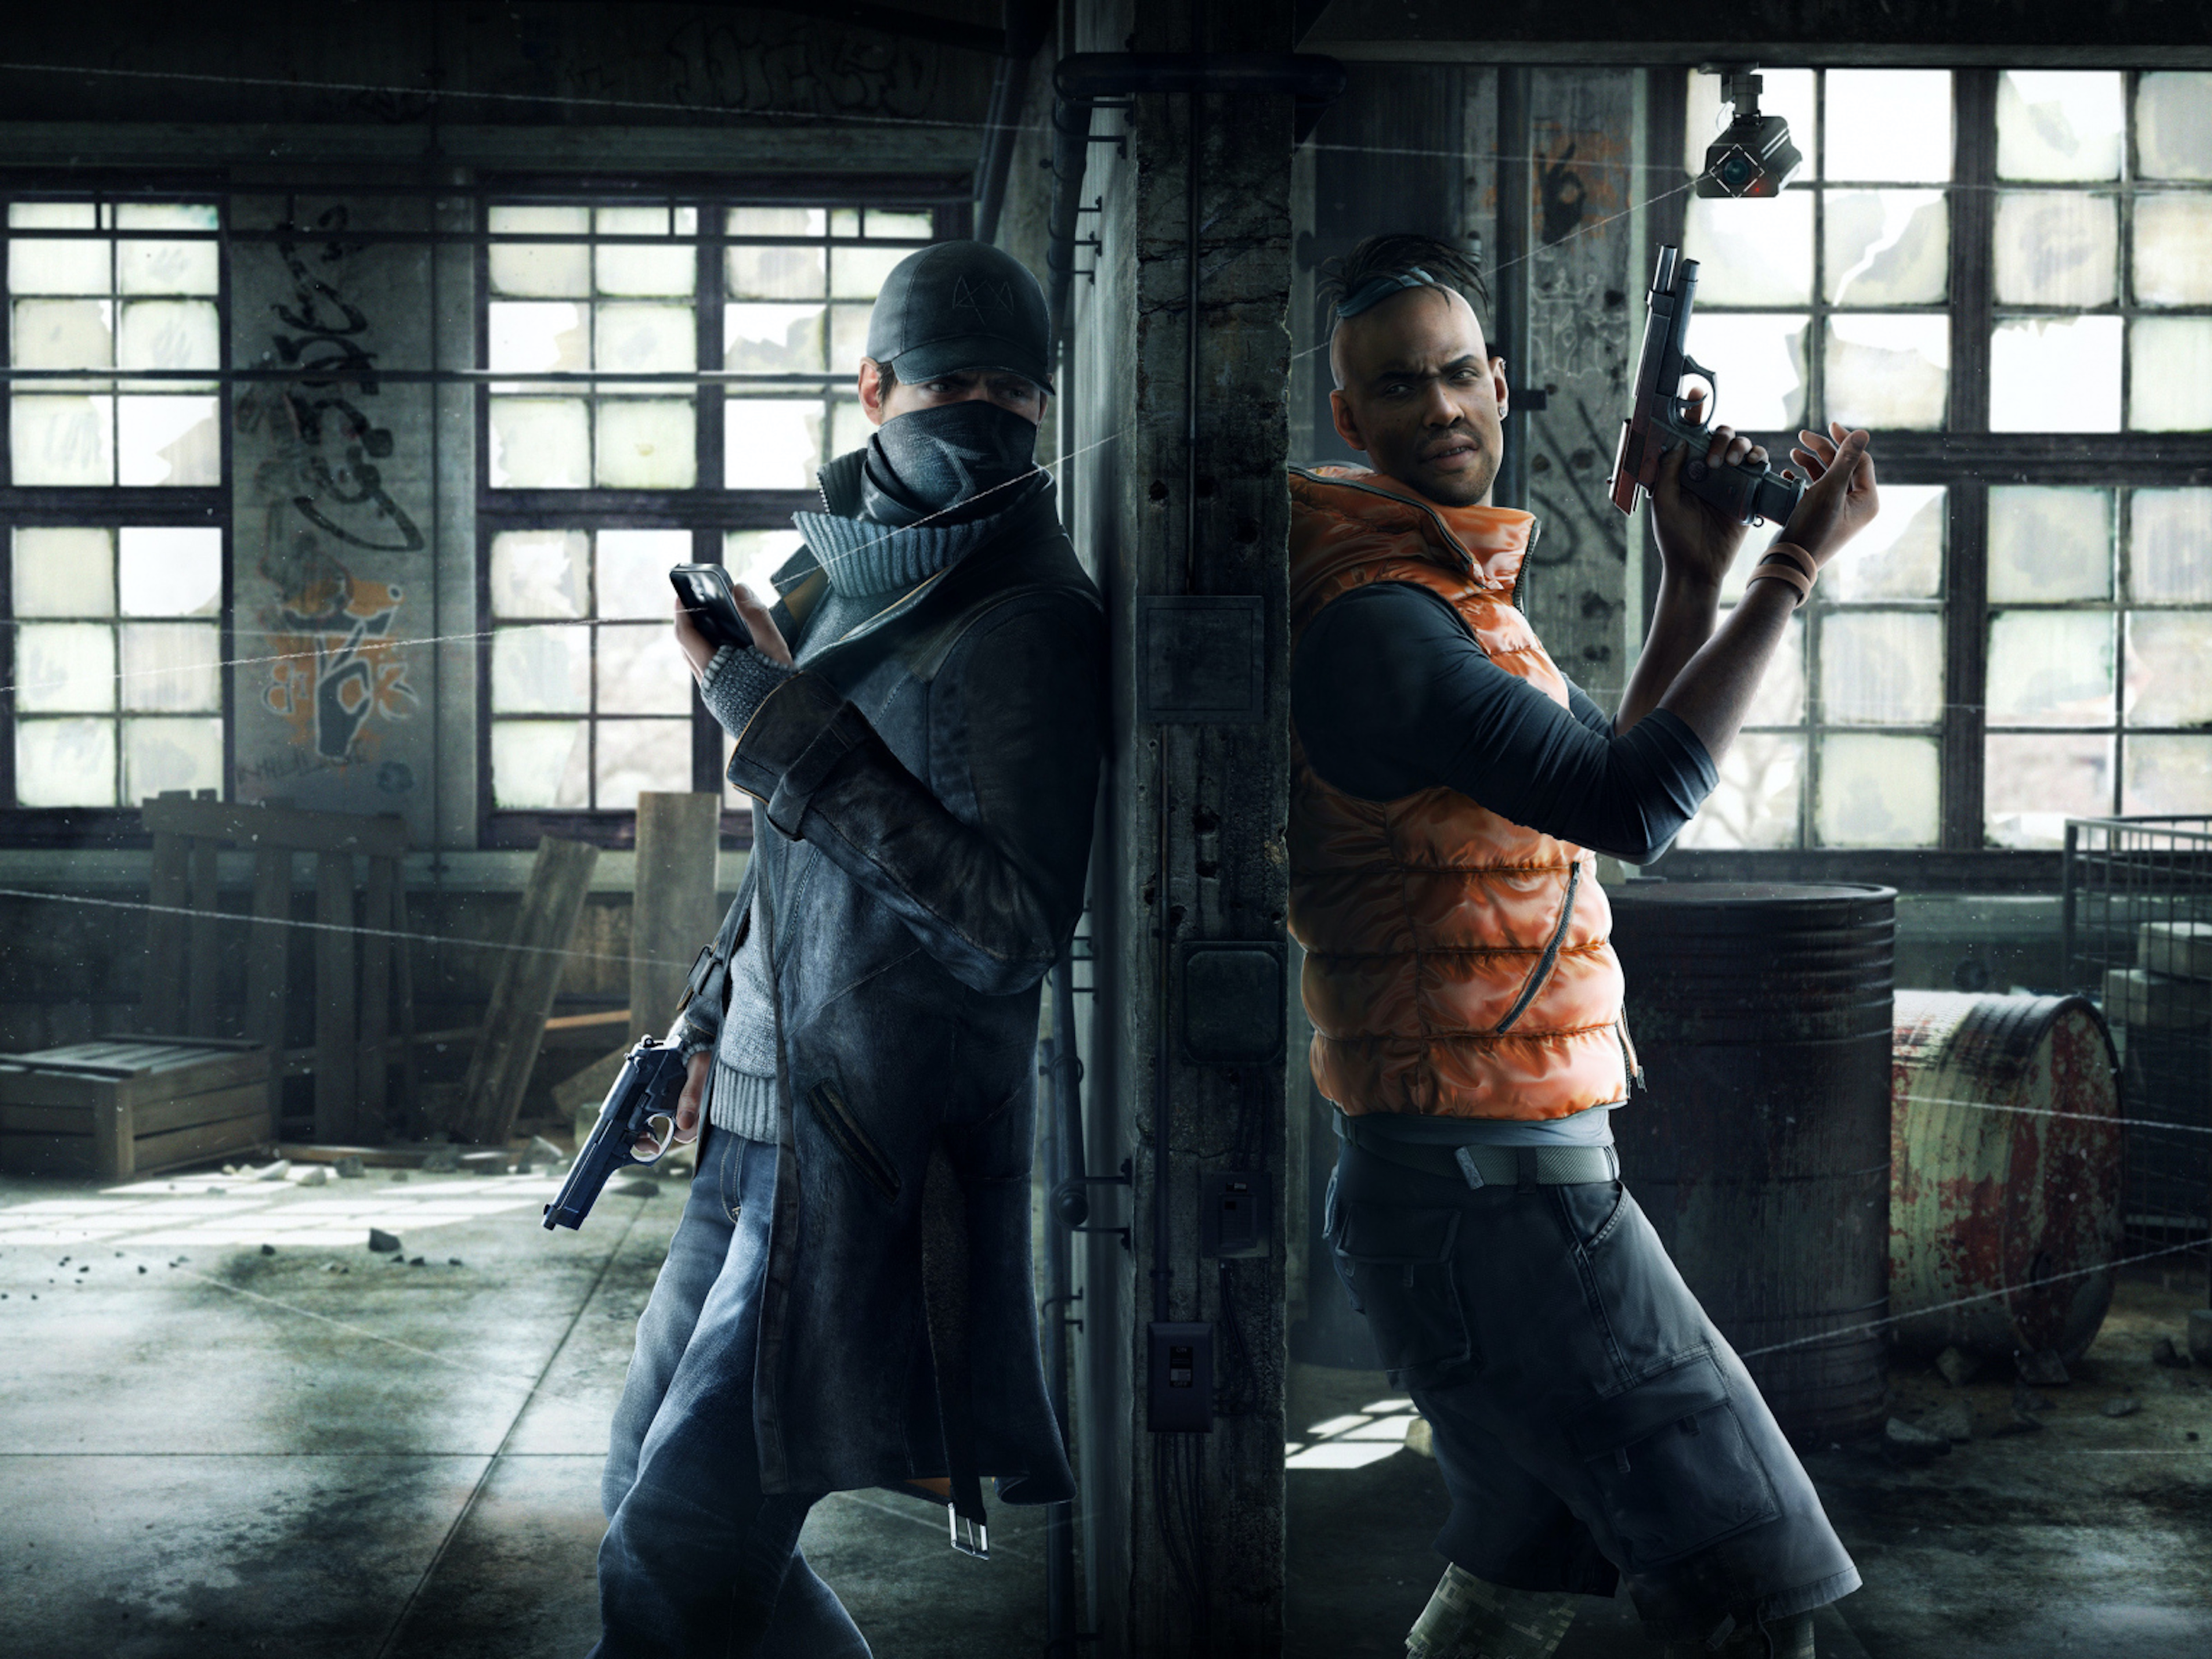 Watch dogs aiden pearce weapons 97852 1600x1200.jpg